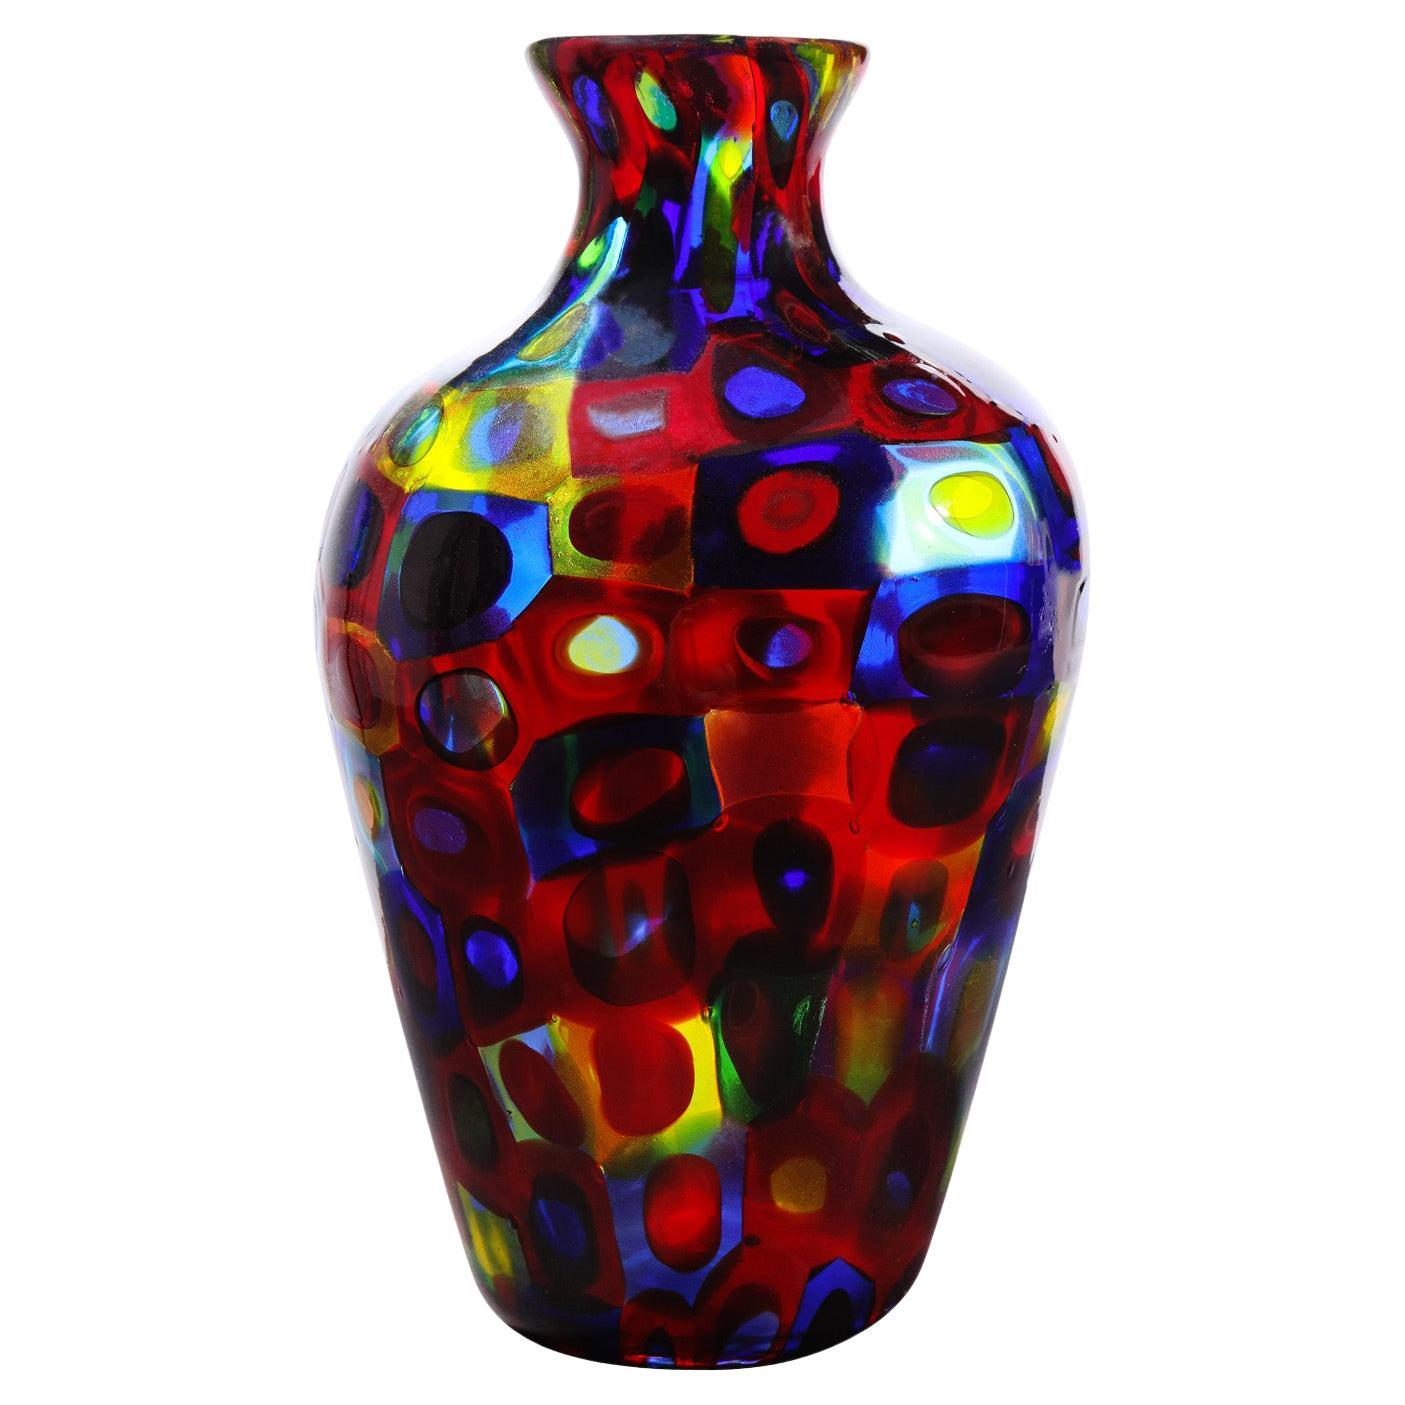 Handblown Glass Vase with Large Murrhines by A.V.E.M, 1950s